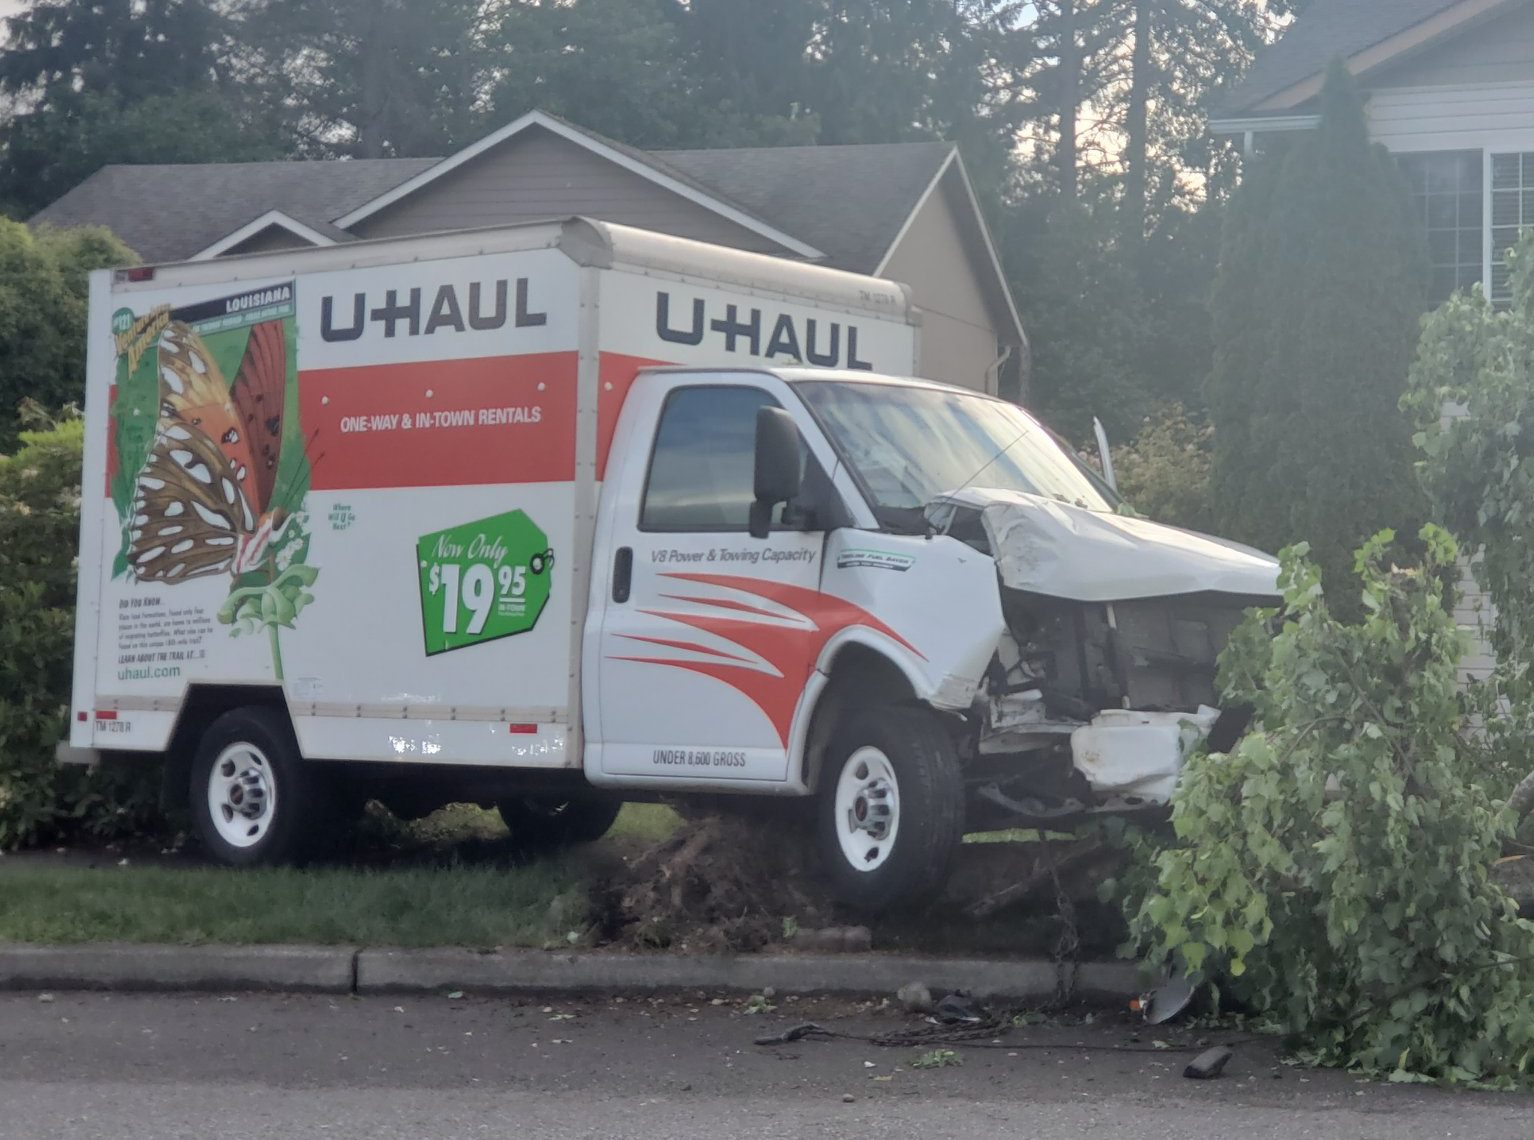 Uhaul accident and if you are covered on your auto insurance while renting one? The Miller Insurance Agency - Everett, WA